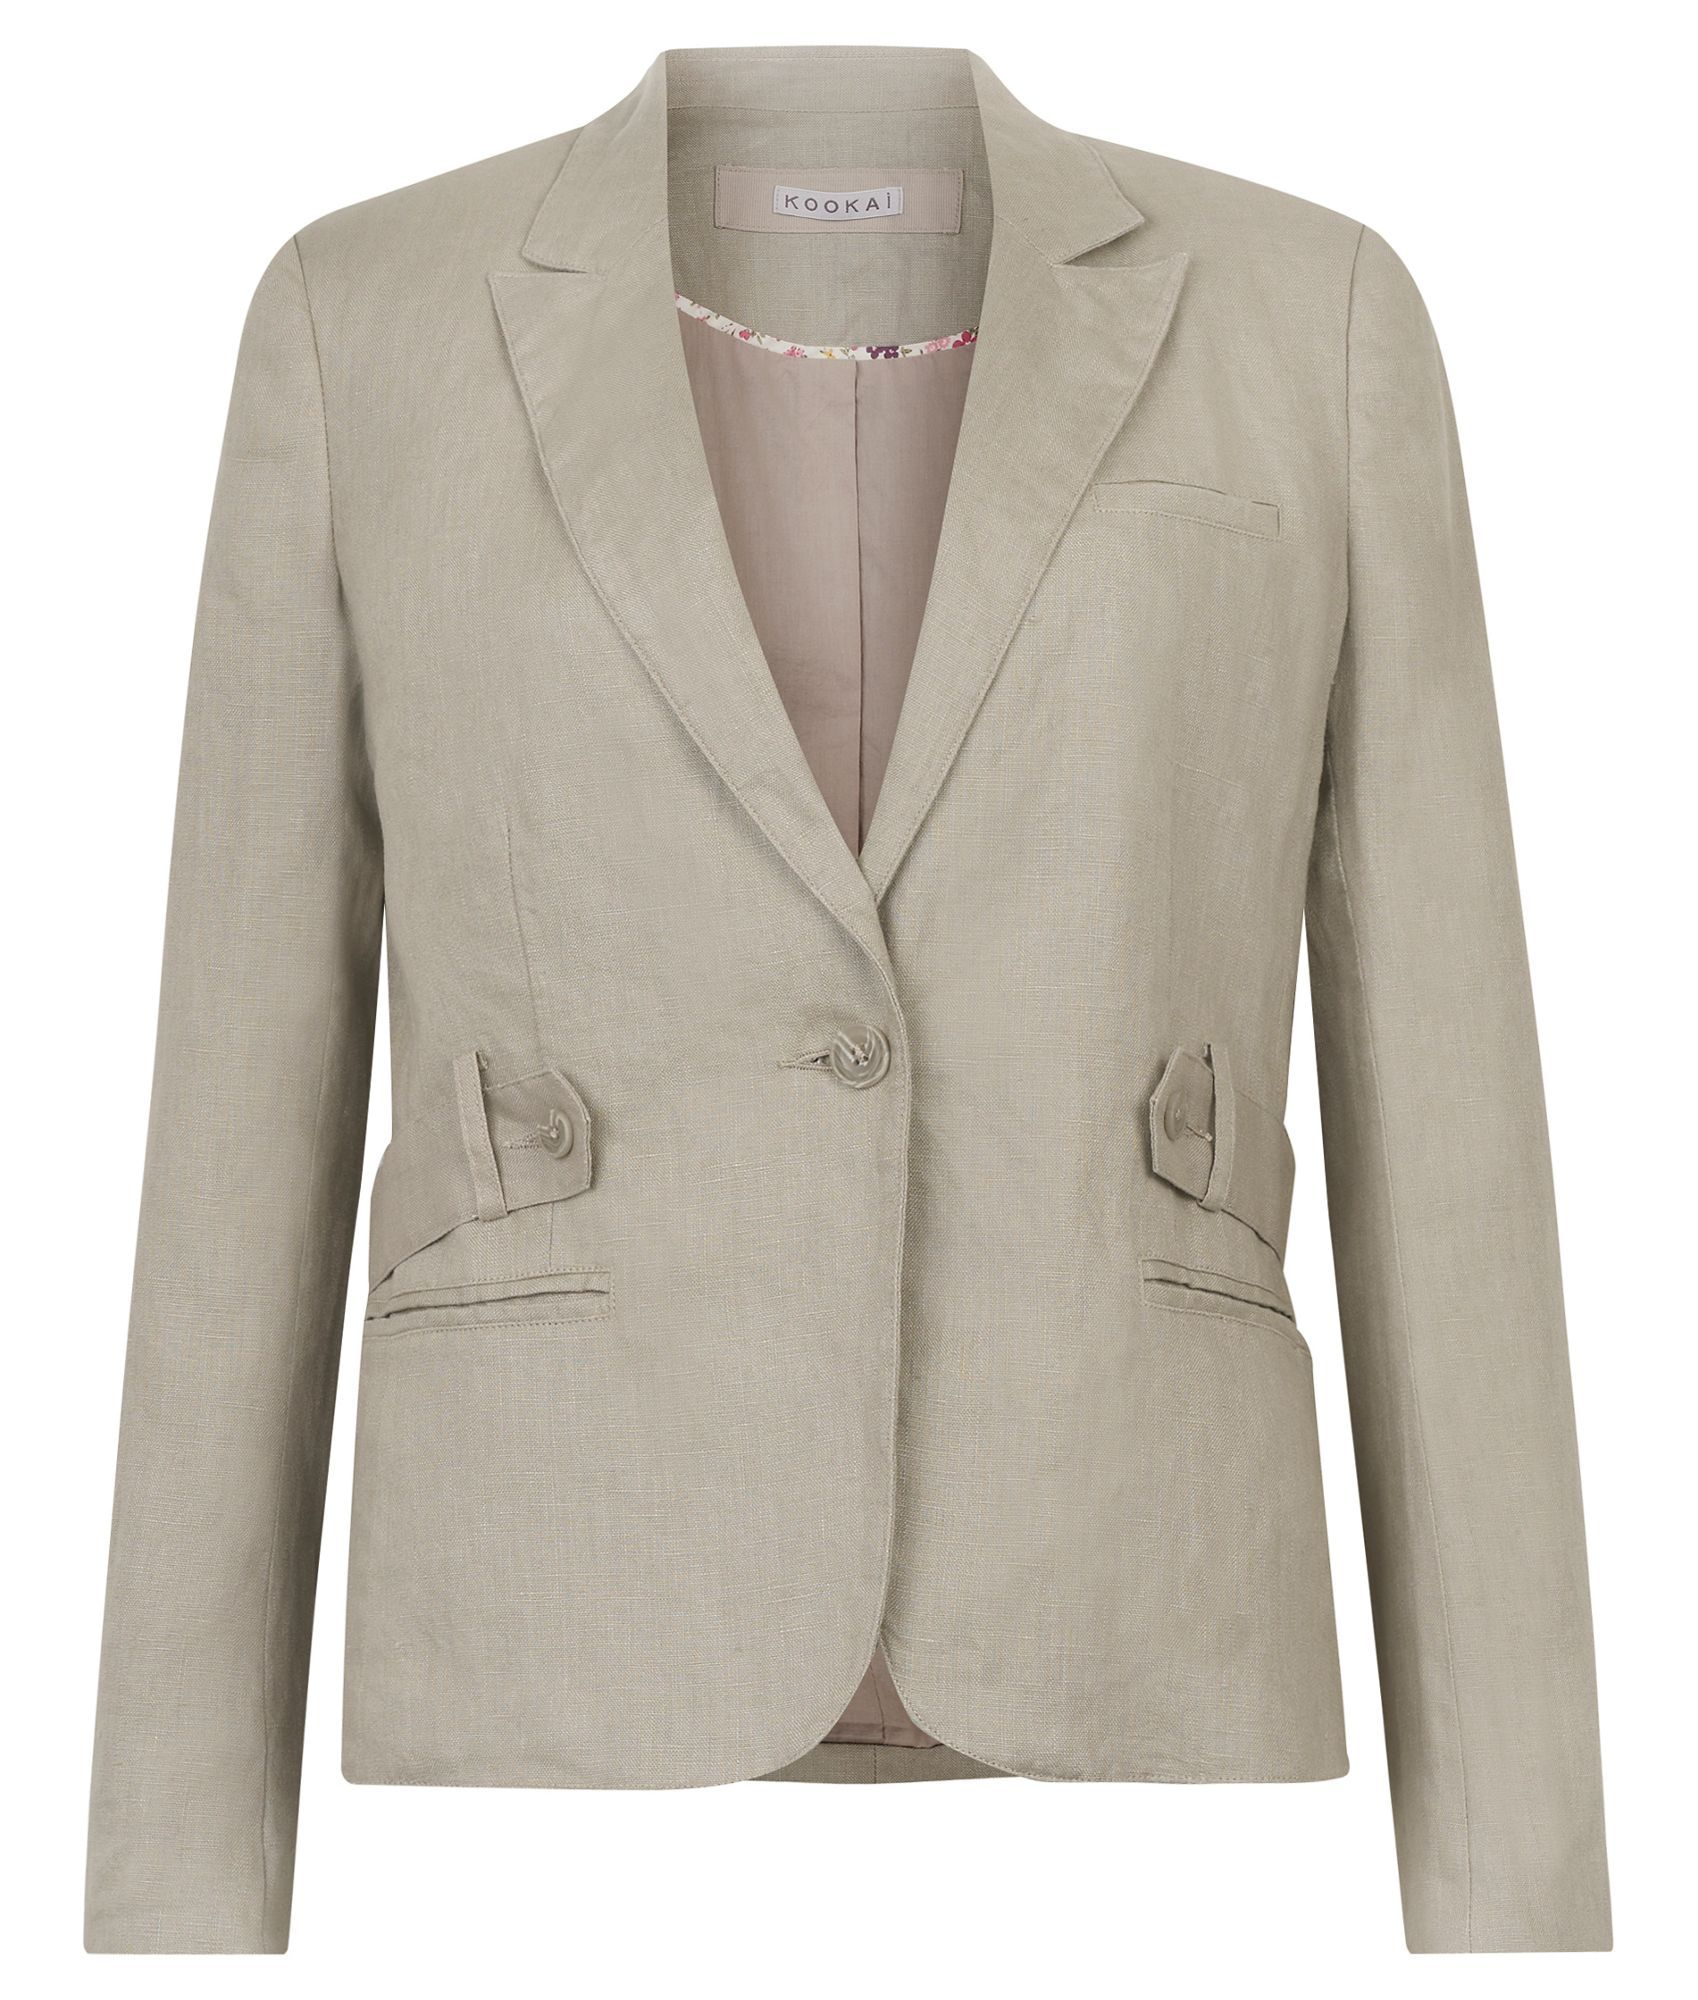 Women's Belted Linen Blazer, Tan - pattern: plain; style: single breasted blazer; shoulder detail: shoulder pads; bust detail: added detail/embellishment at bust; hip detail: side pockets at hip, front pockets at hip; collar: standard lapel/rever collar; predominant colour: taupe; occasions: casual, work; length: standard; fit: tailored/fitted; fibres: linen - 100%; material texture: calico; waist detail: fitted waist, belted waist/tie at waist/drawstring; sleeve length: long sleeve; sleeve style: standard; texture group: cotton feel fabrics; collar break: medium; pattern type: fabric; pattern size: standard